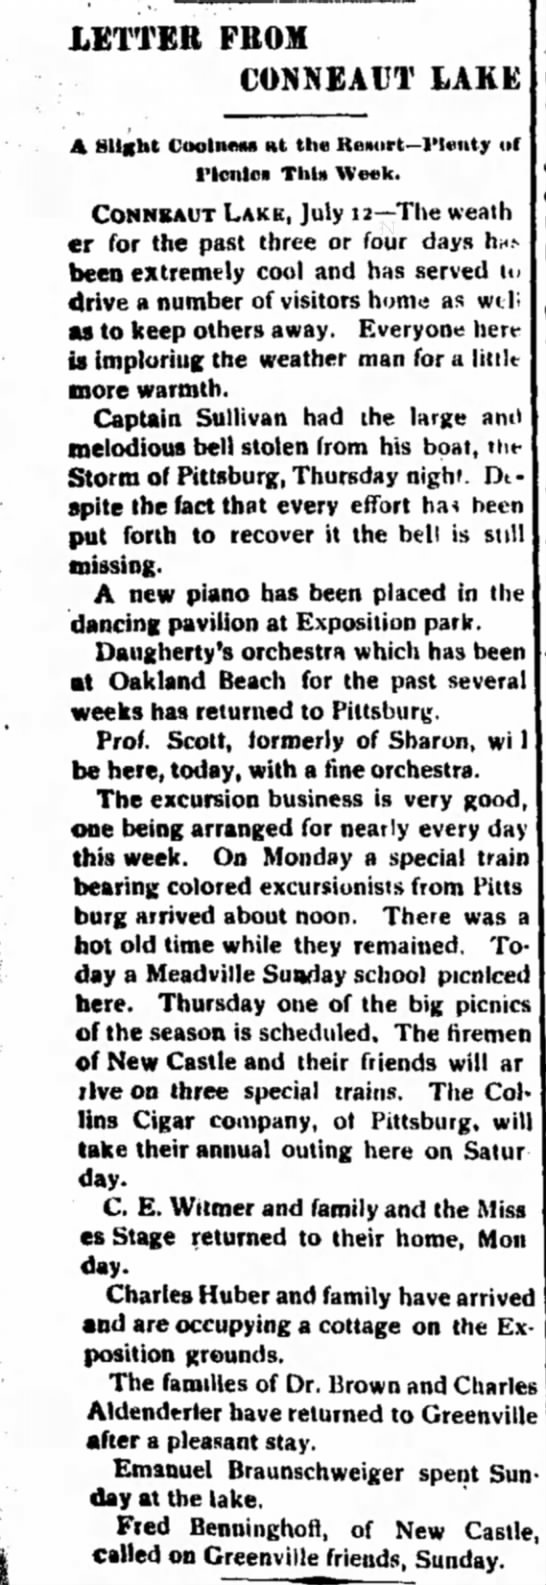 Record Argus 7/14/1898 Sullivan's Bell - LETTER FROM CONNEAUT LAKE A Slight CooliutiM Ht...